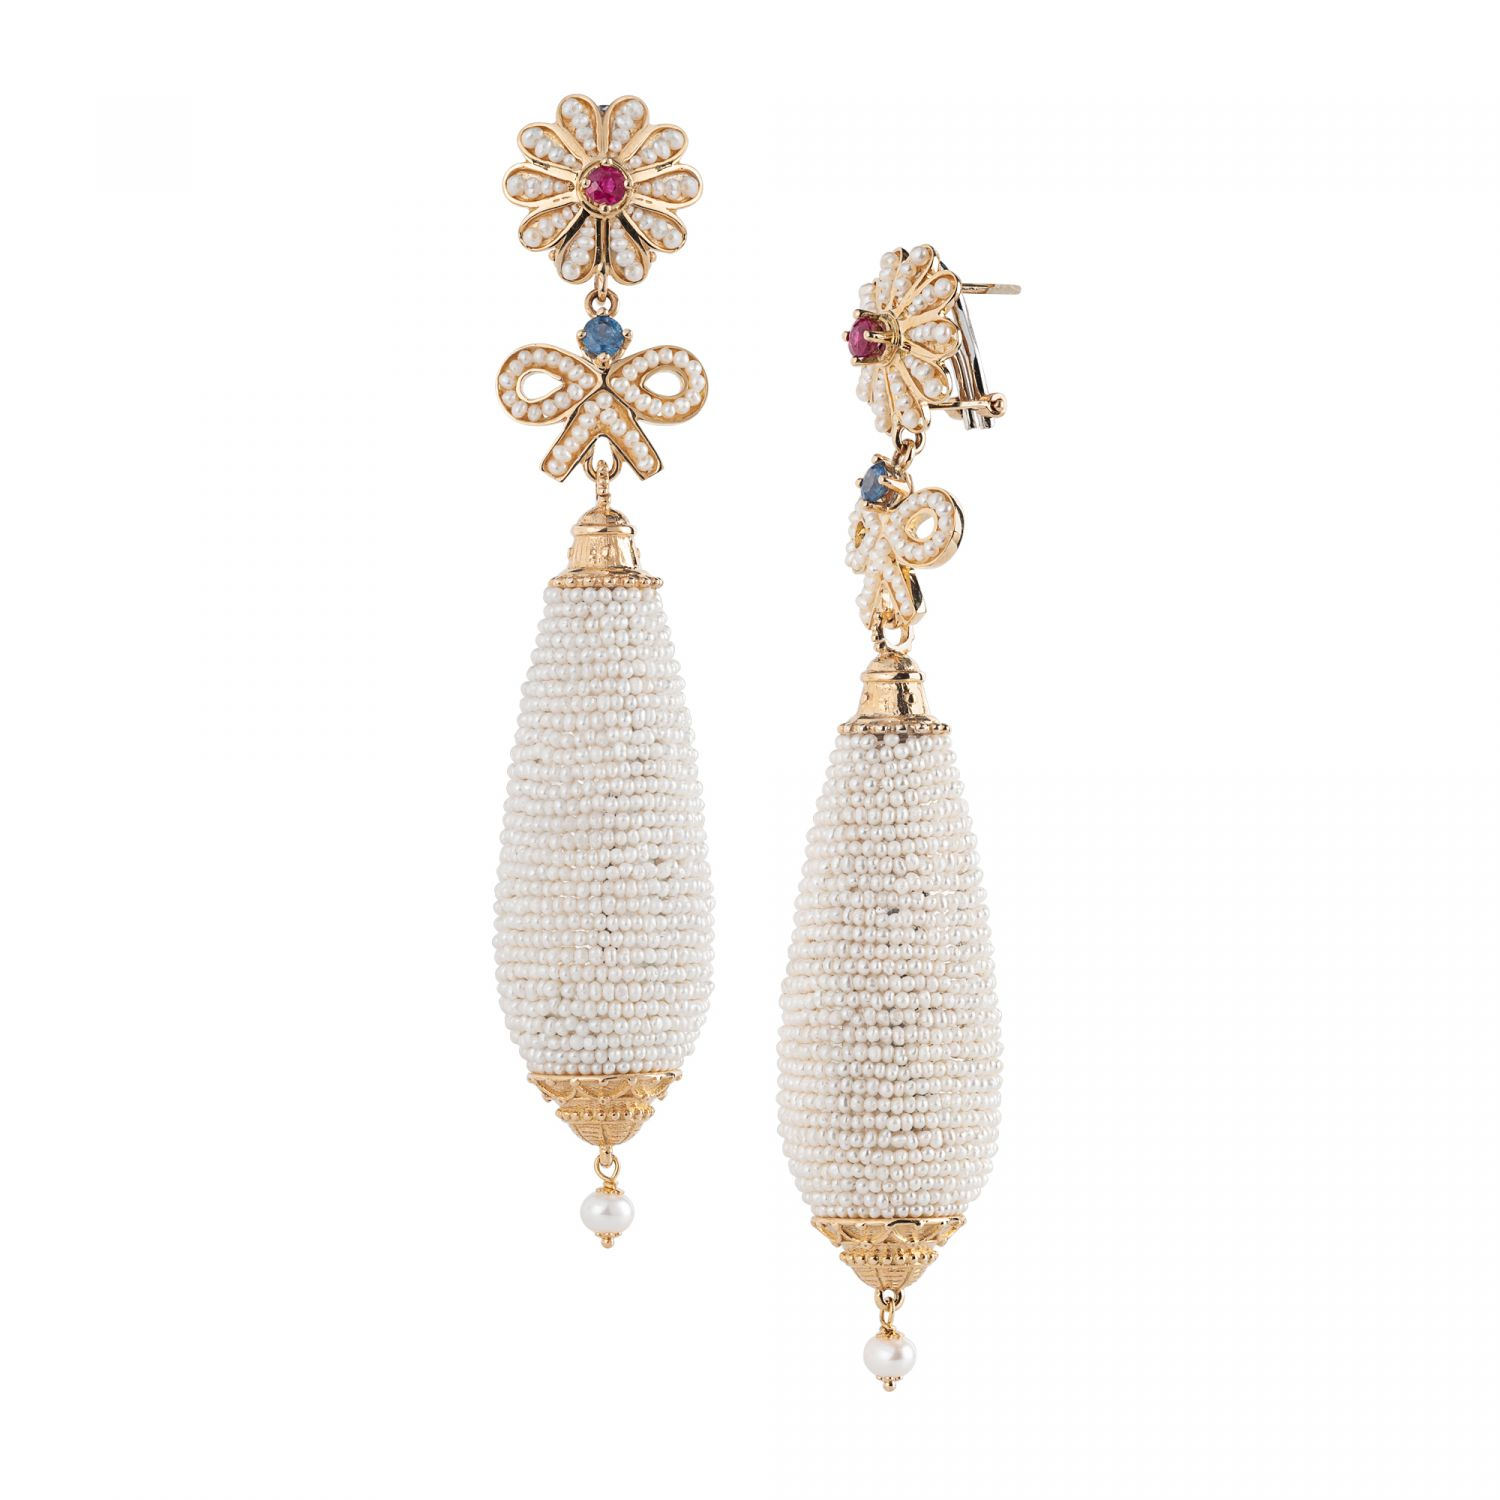 Gold pendant Earrings with Pearls and precious Stones (14205)